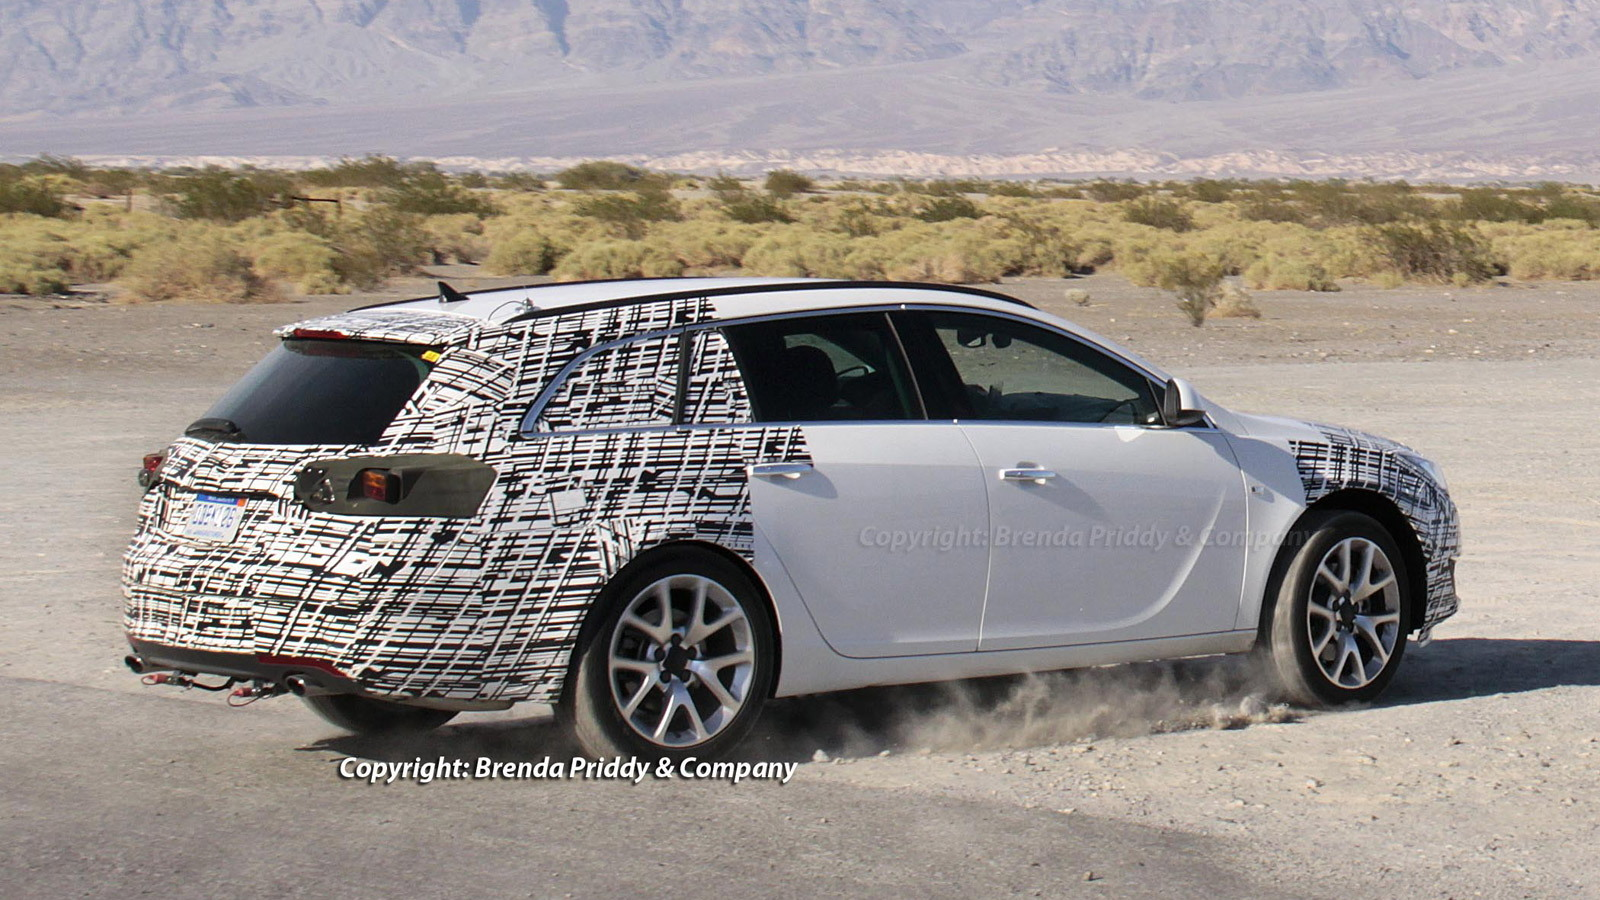 2014 Buick Regal Sport Wagon spy shots